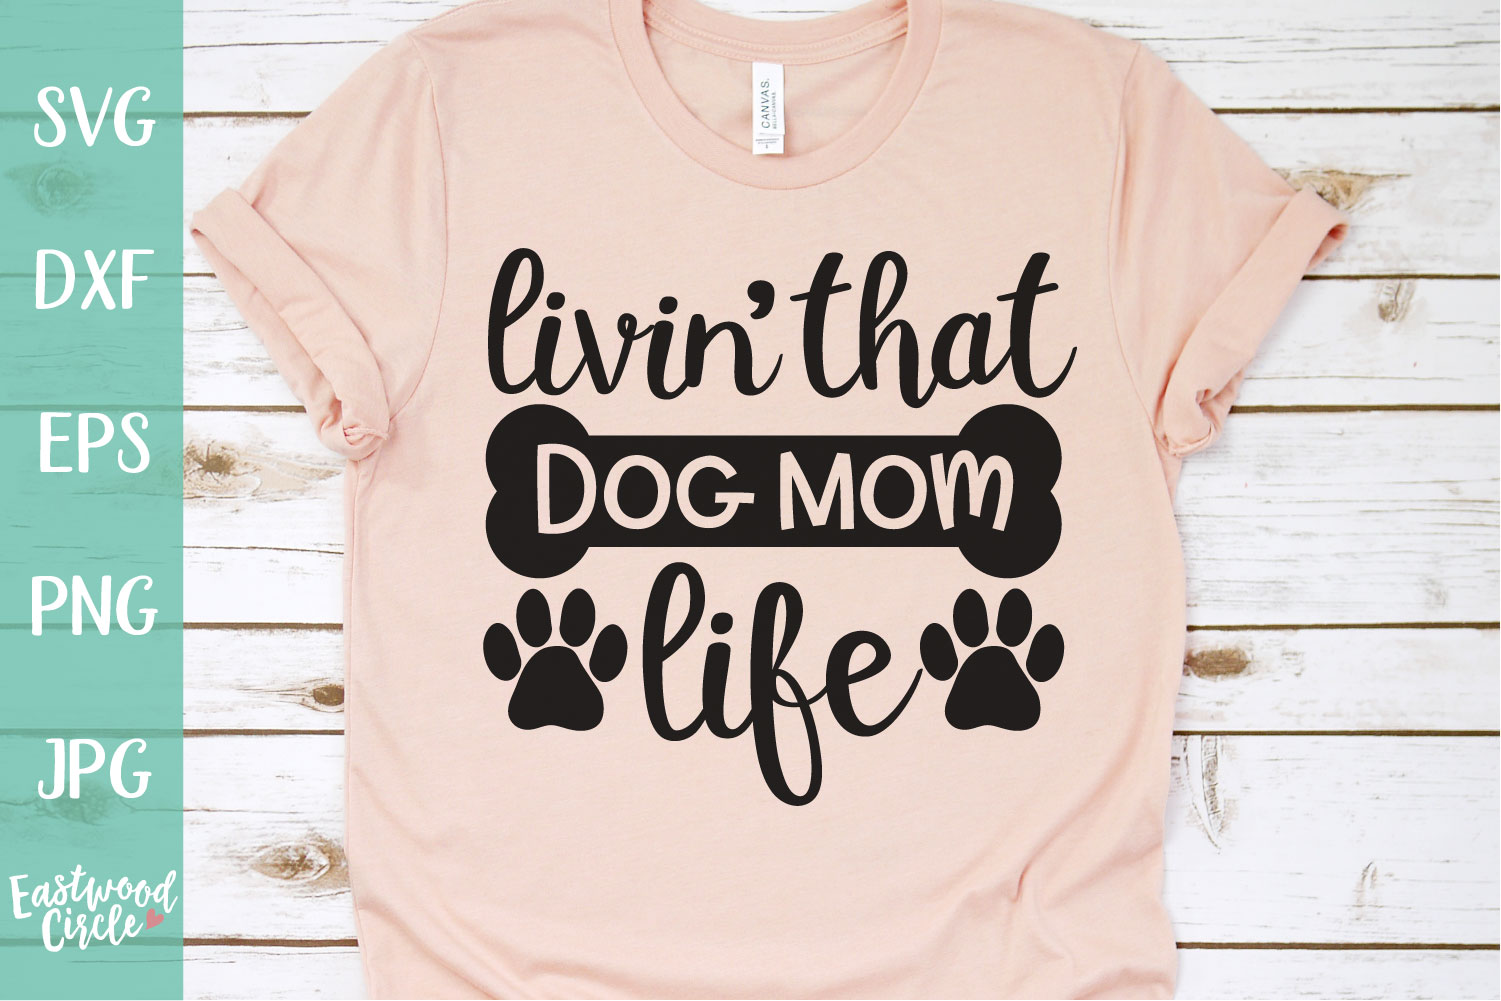 Livin' That Dog Mom Life - Dog SVG File for Crafters example image 1